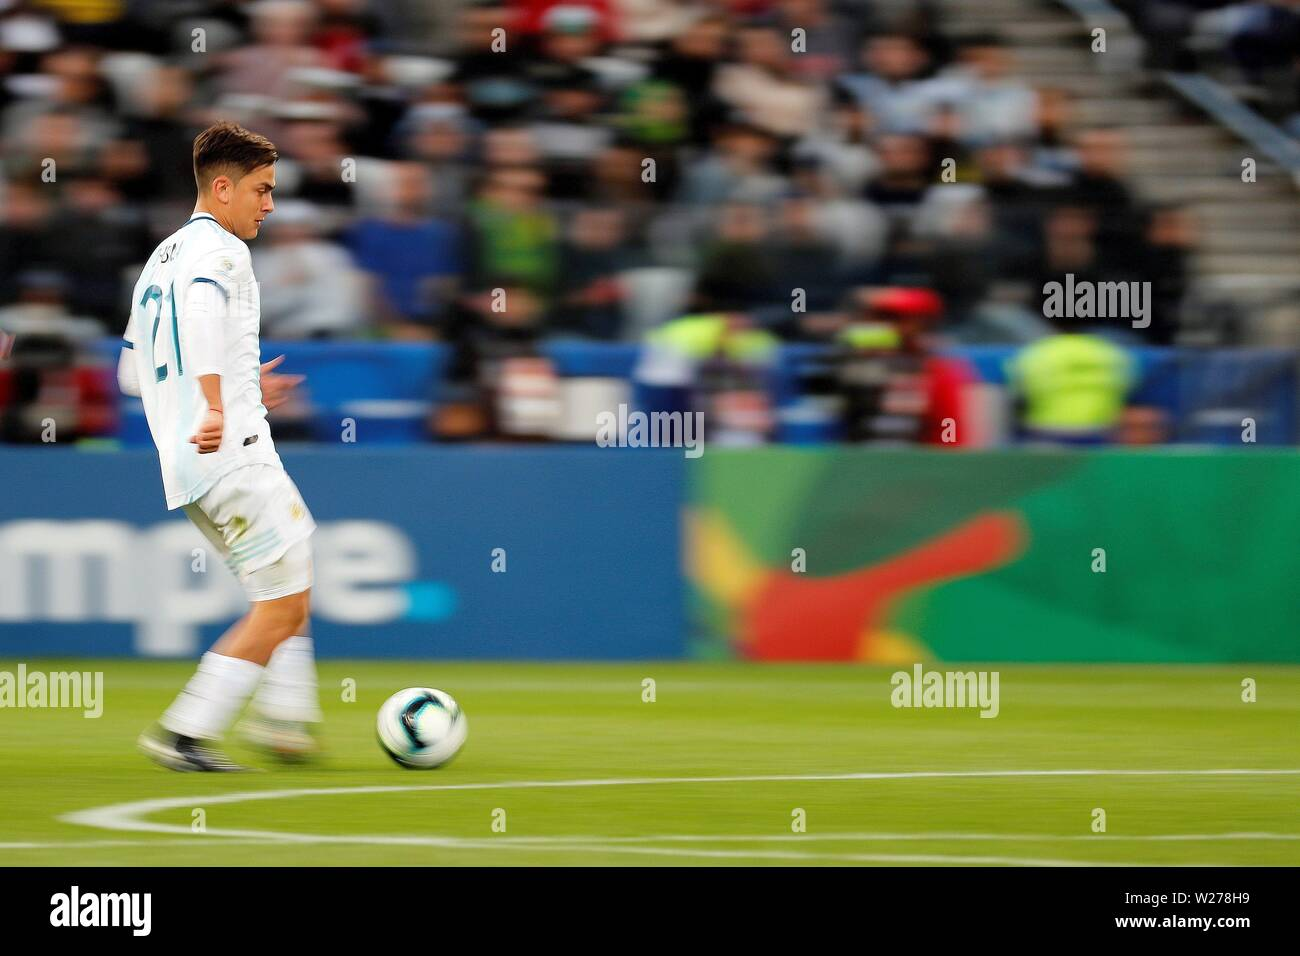 Sao Paulo, Brazil. 06th July, 2019. Argentina's Paulo Dybala in action during the Copa America 2019 3rd place soccer match between Argentina and Chile, at Arena Corinthians Stadium in Sao Paulo, Brazil, 6 July 2019. Credit: Paulo Whitaker/EFE/Alamy Live News - Stock Image